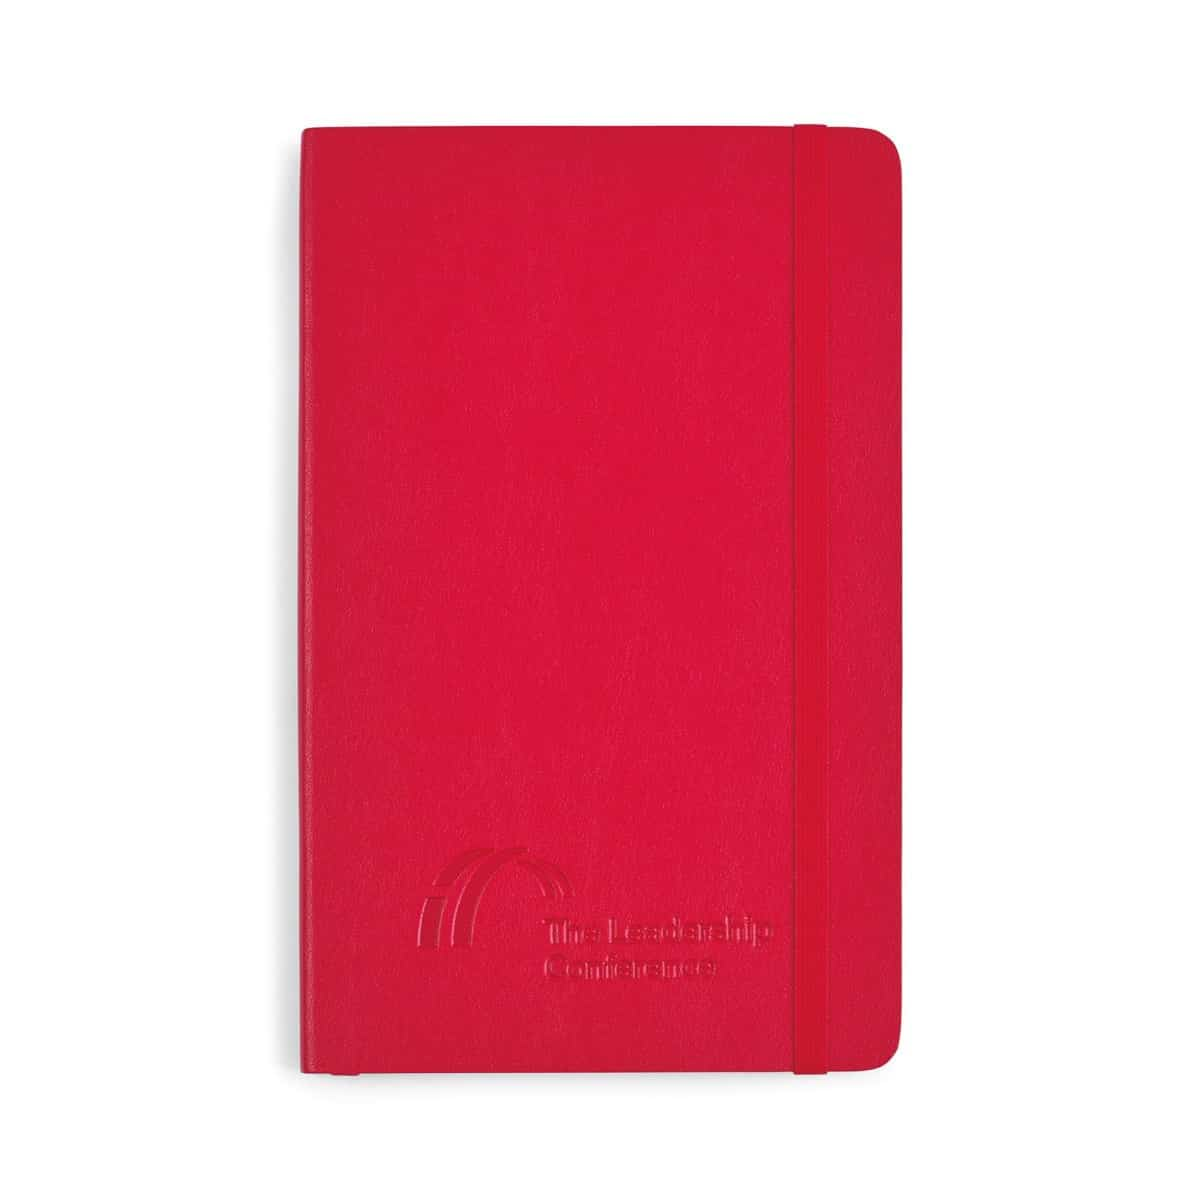 Moleskine® Soft Cover Ruled Large Notebook Red